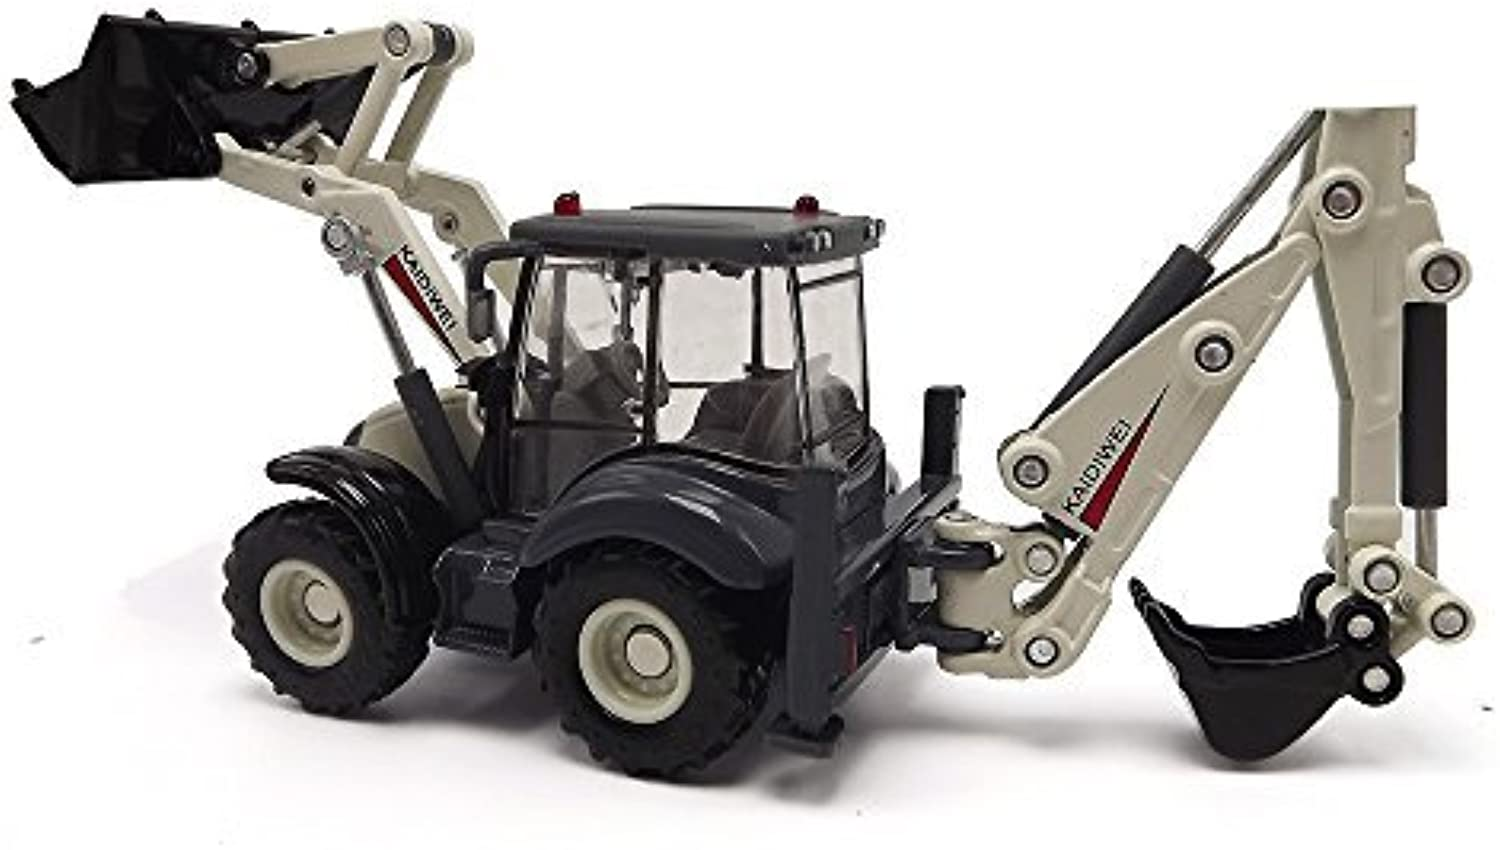 EMart Alloy Diecast Toy Digger and Excavator Truck Model 1 50 4-Wheel Multi-Function Excavator Metal Engineering Vehicle Car Collection Toys for Kids